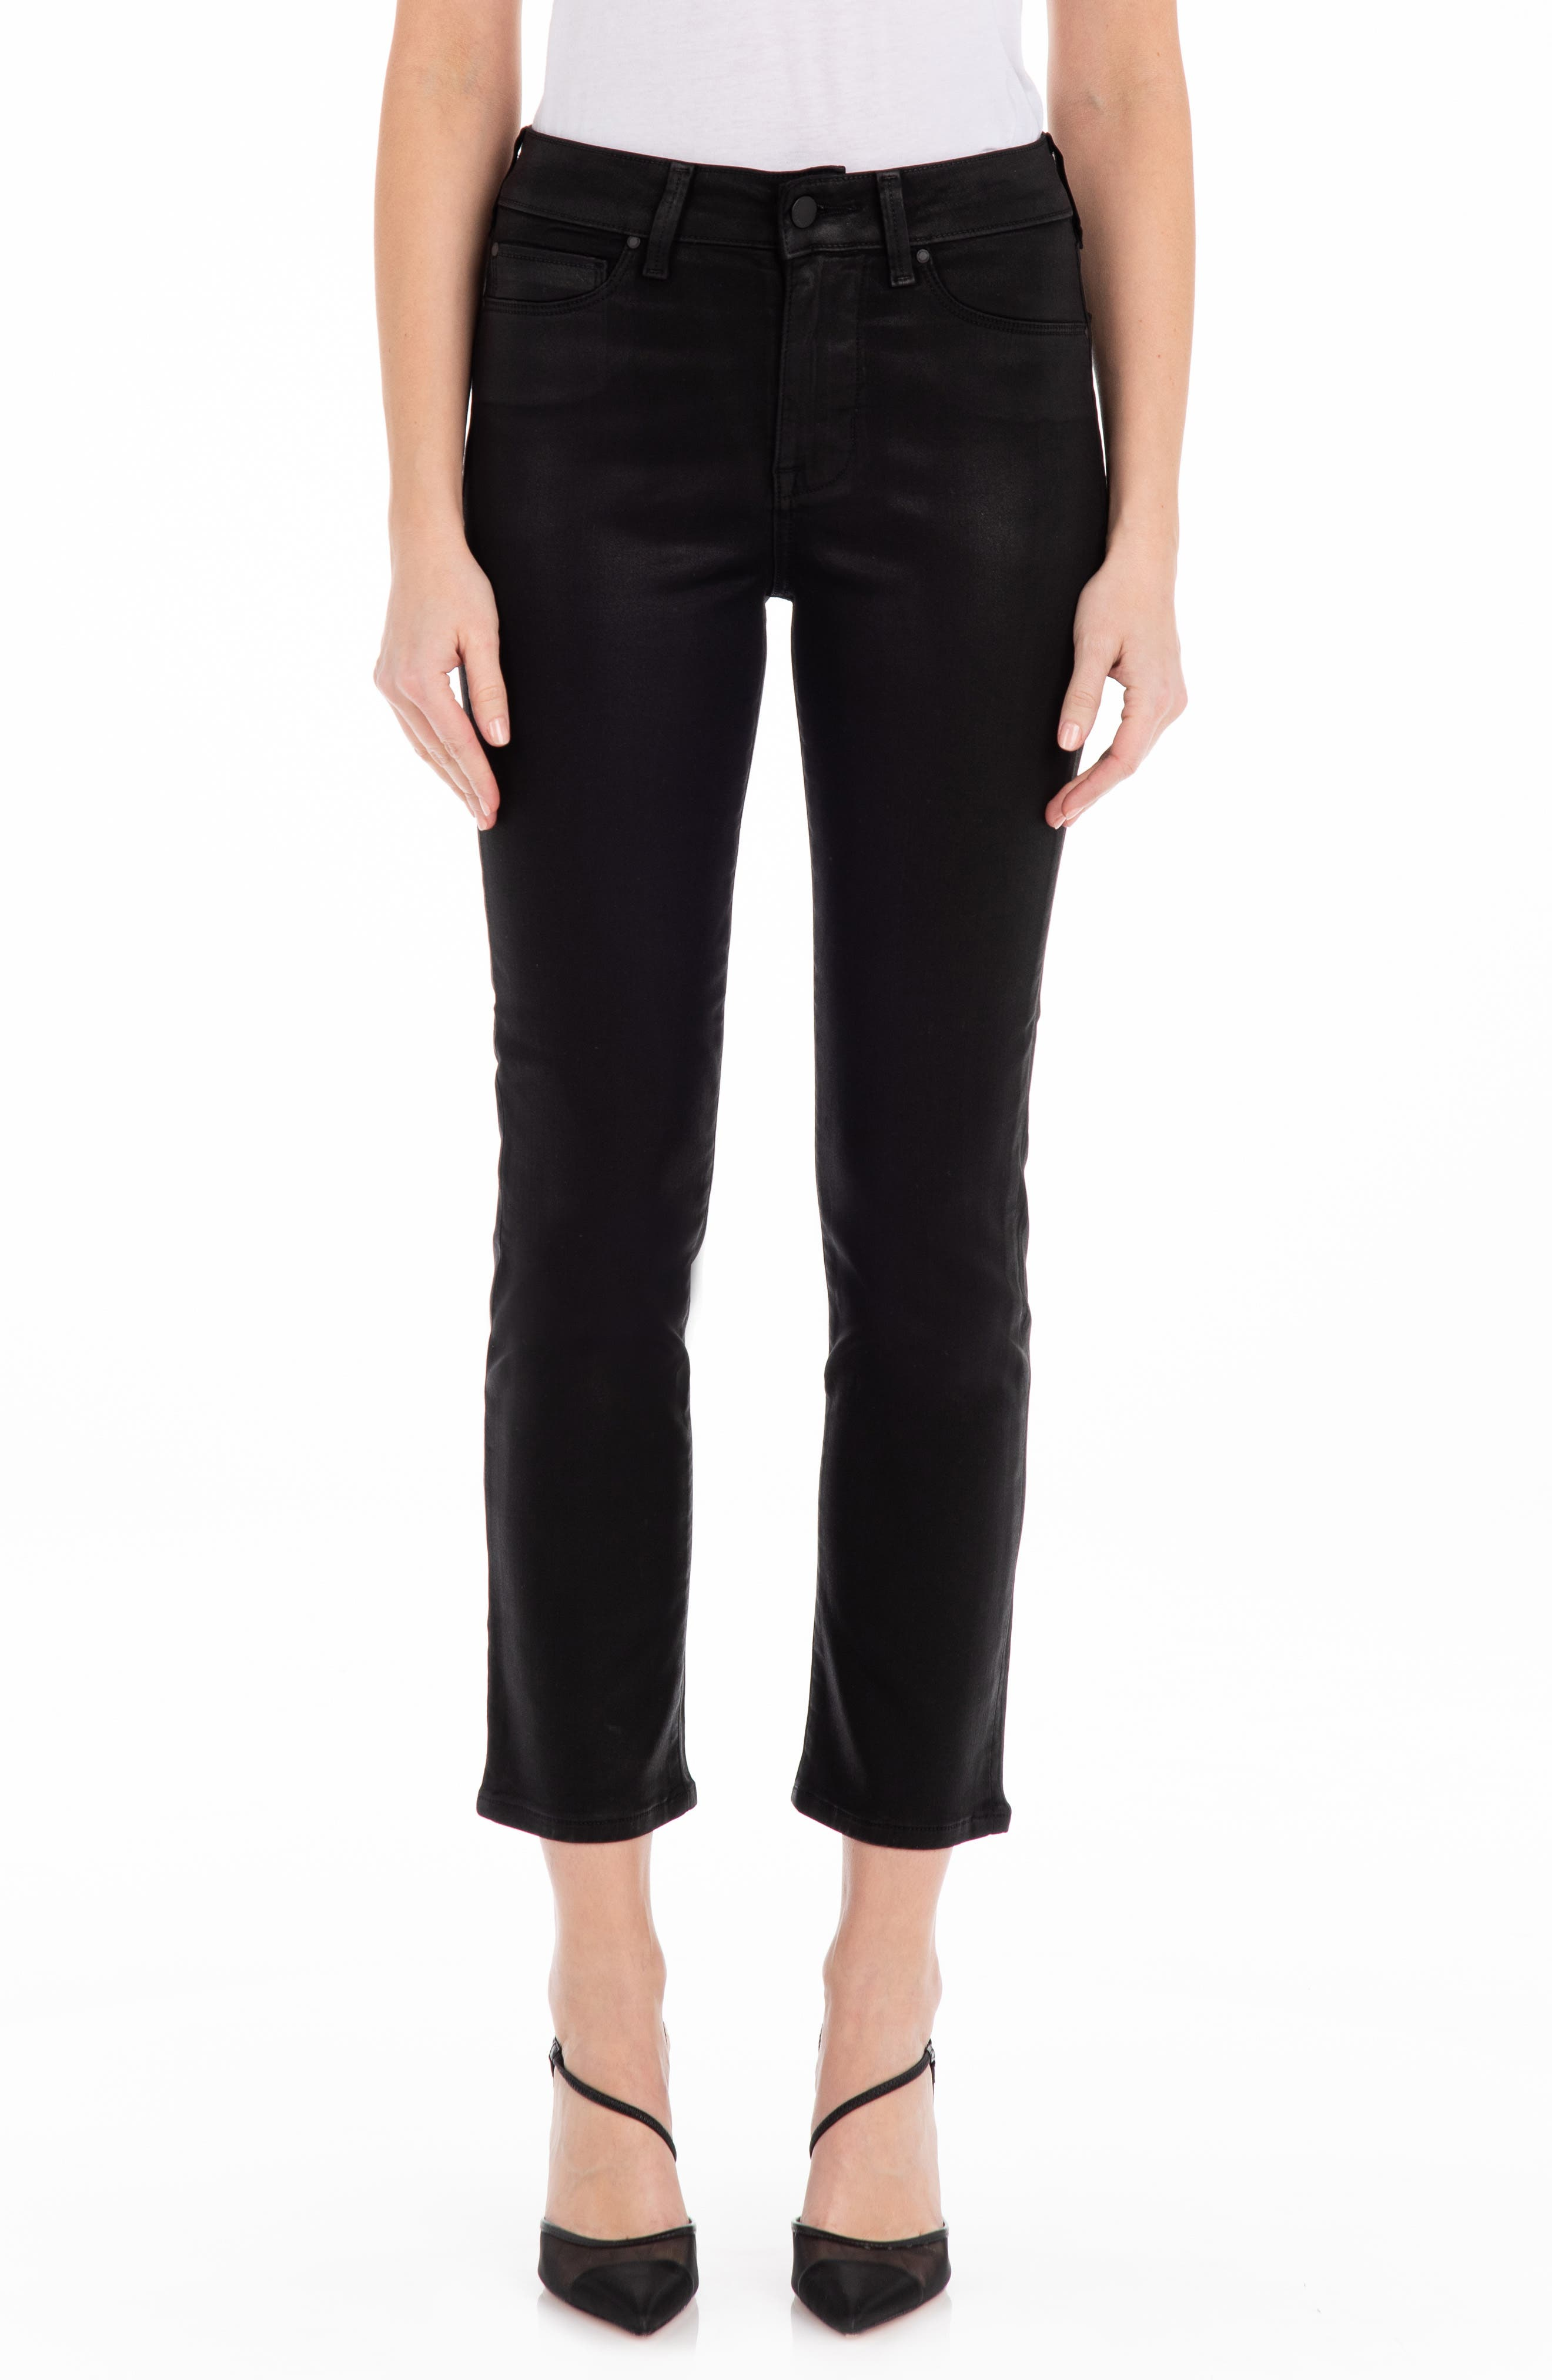 Cher High Waist Ankle Skinny Jeans